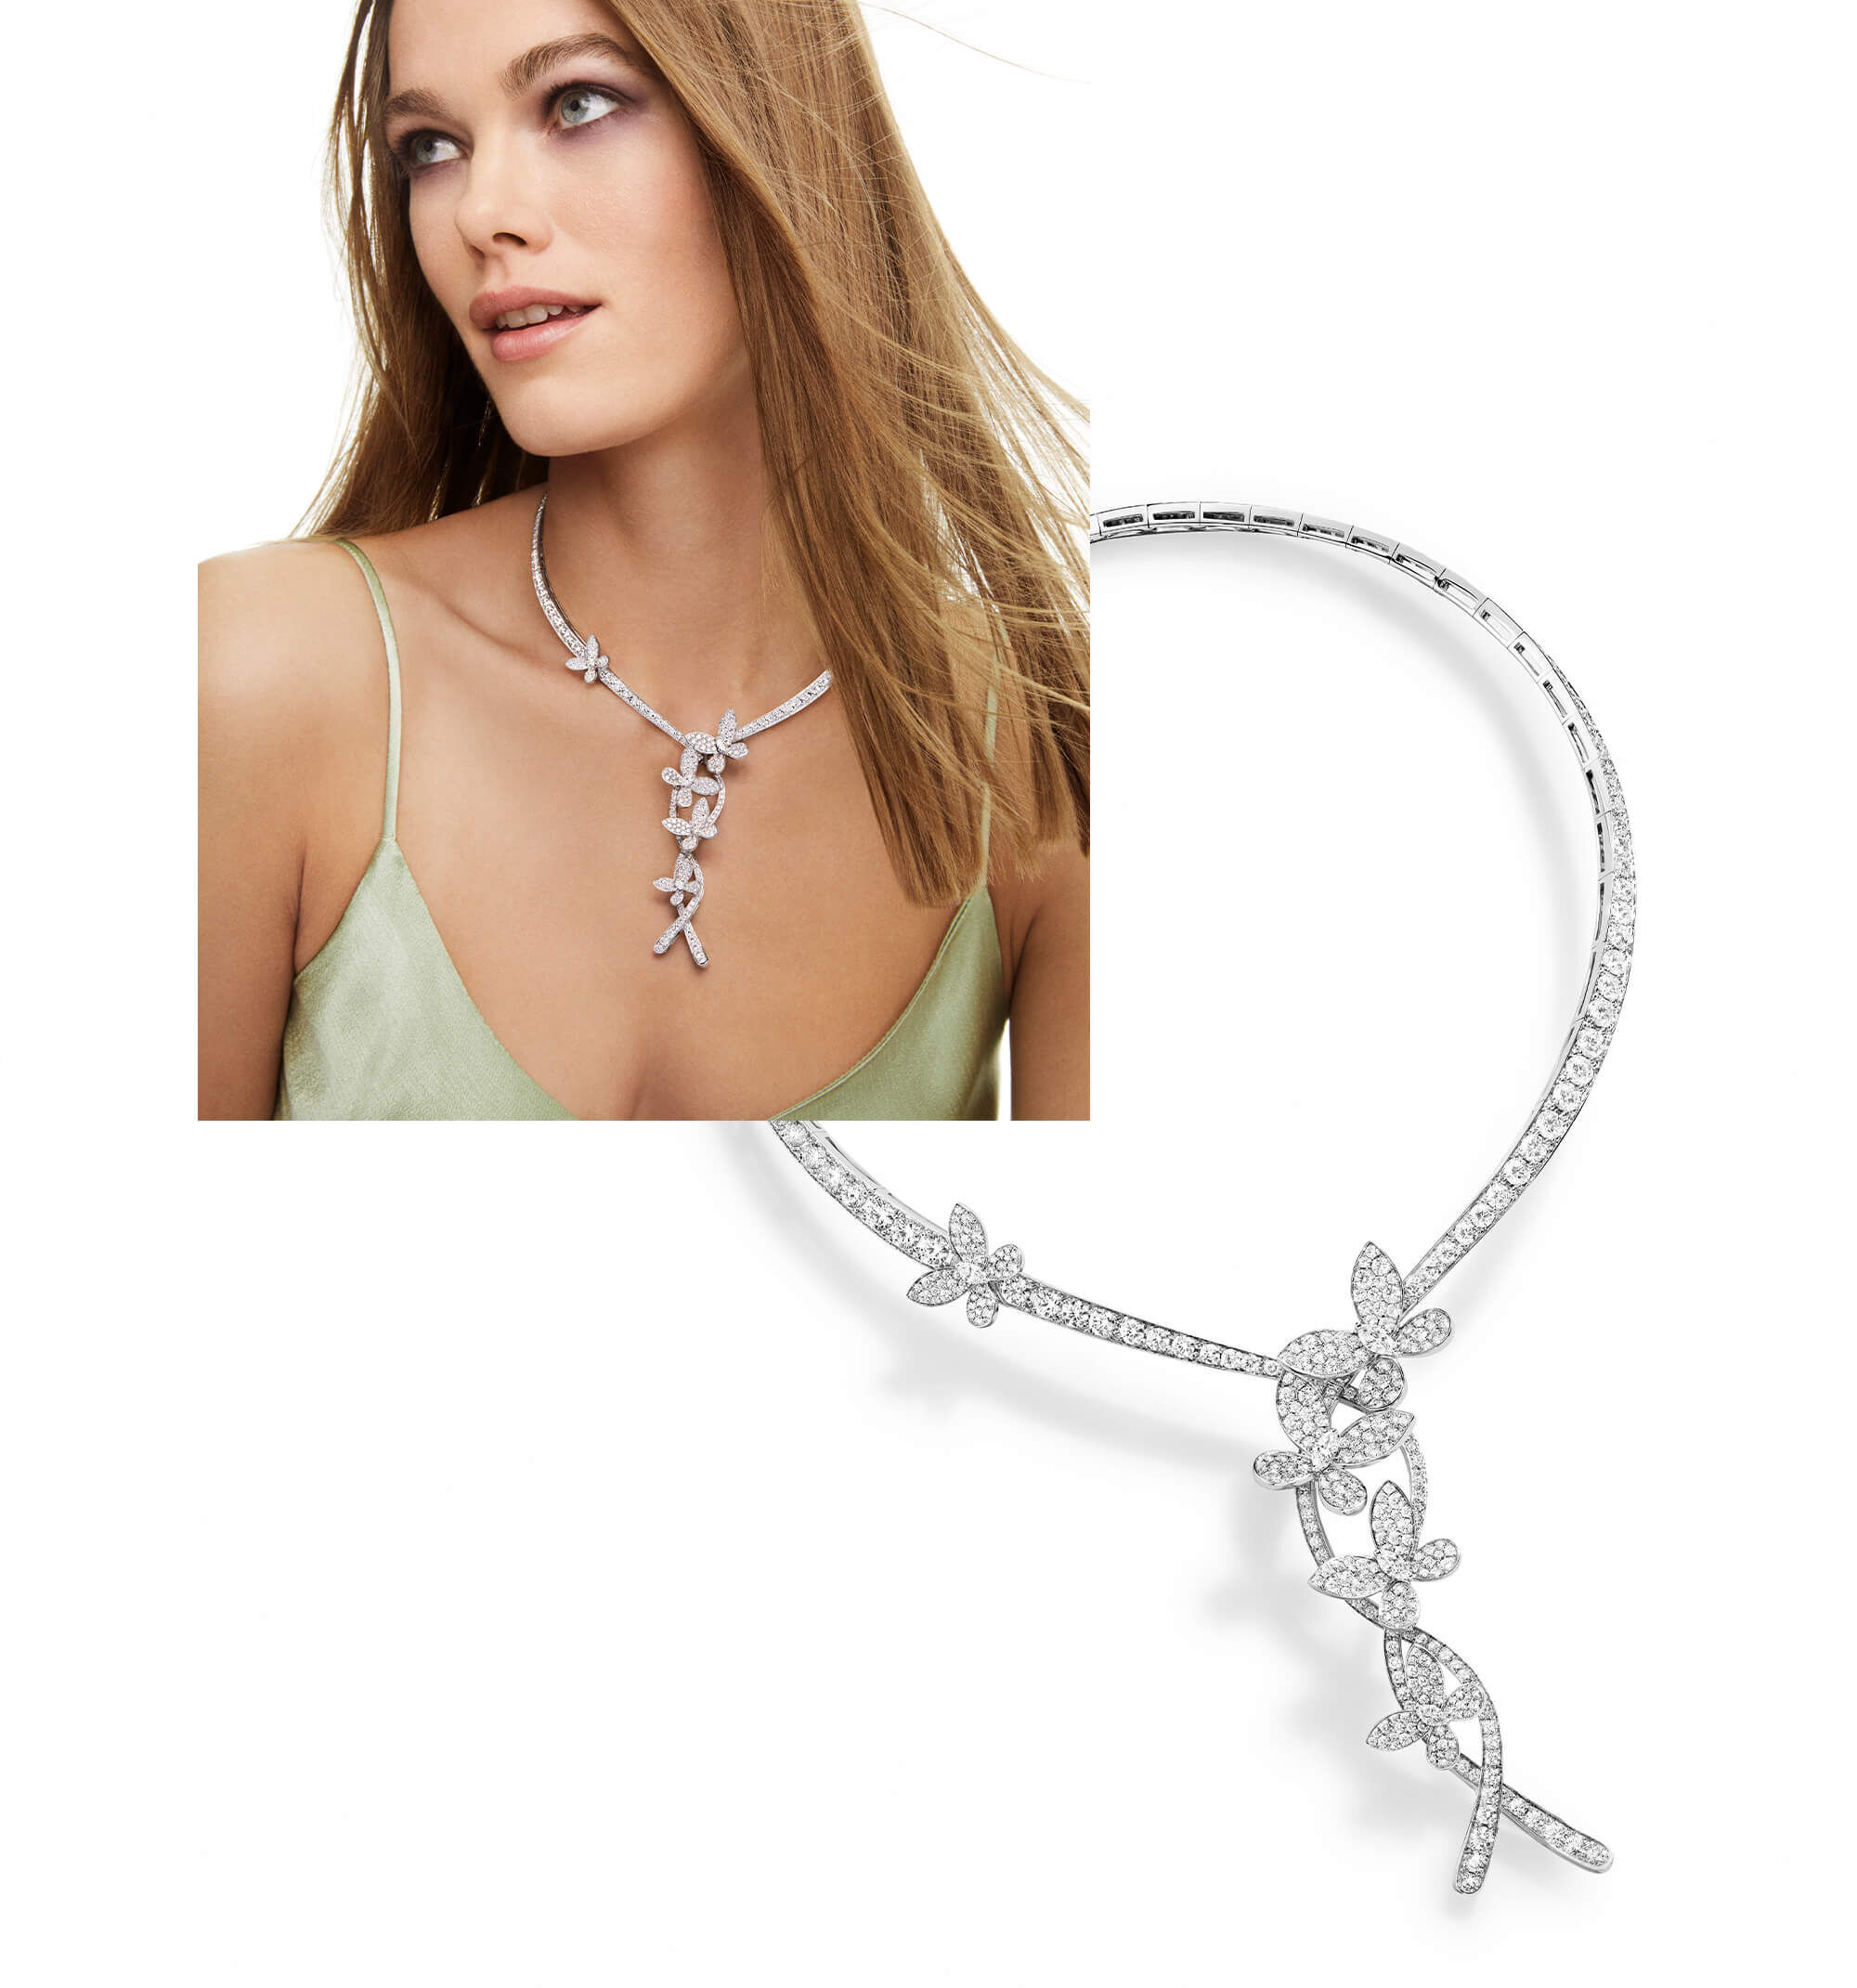 A model wearing the Graff Triple Pave Butterfly diamond necklace